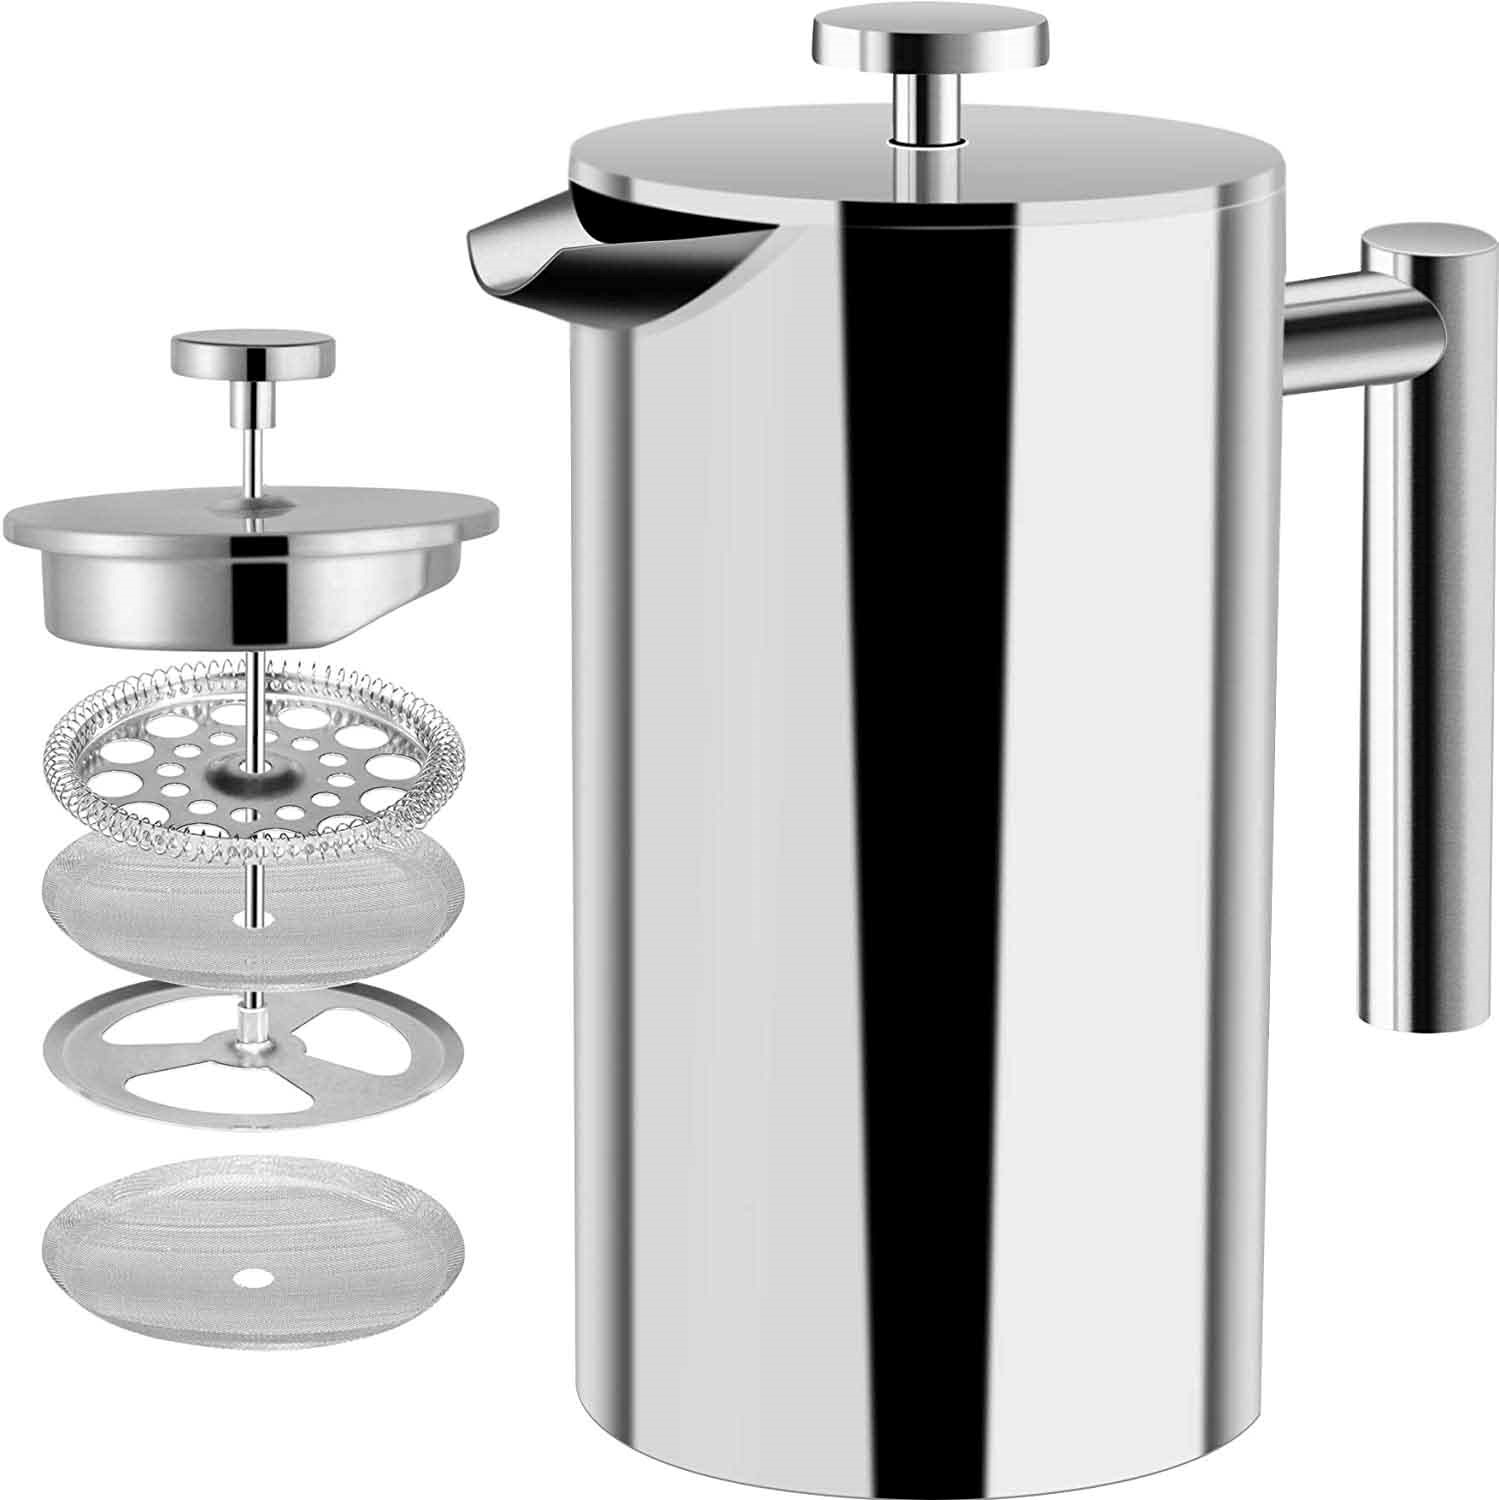 What Is a French Press Coffee Maker